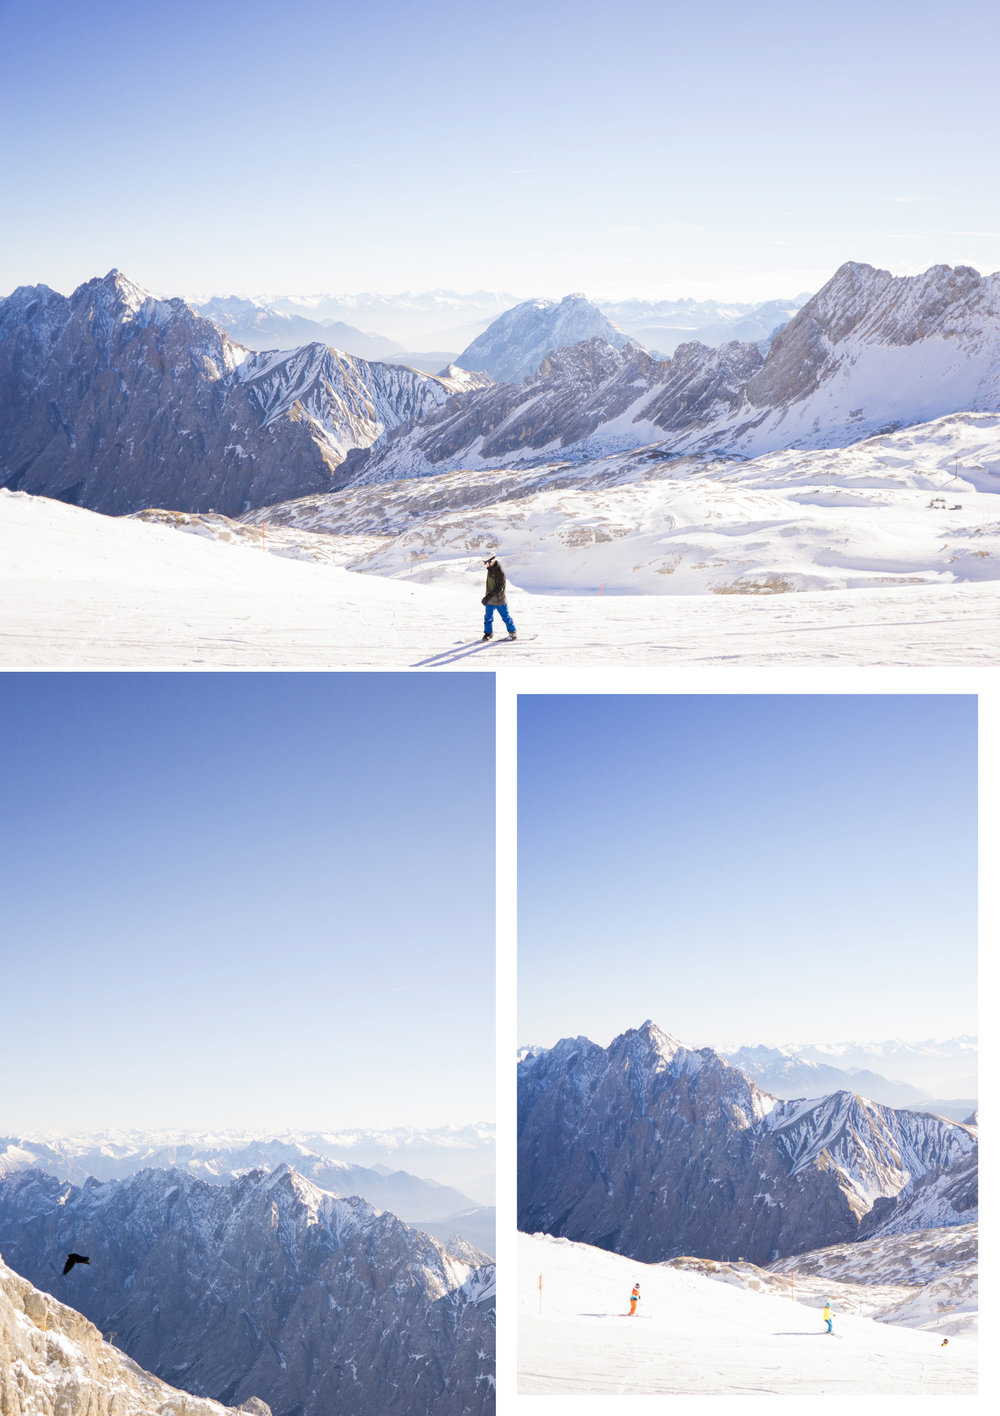 Zugspitze Travel Guide | Top of Germany | Experience the Top of Germany with this handy travel guide, containing whimsical travel photography and useful travel tips.